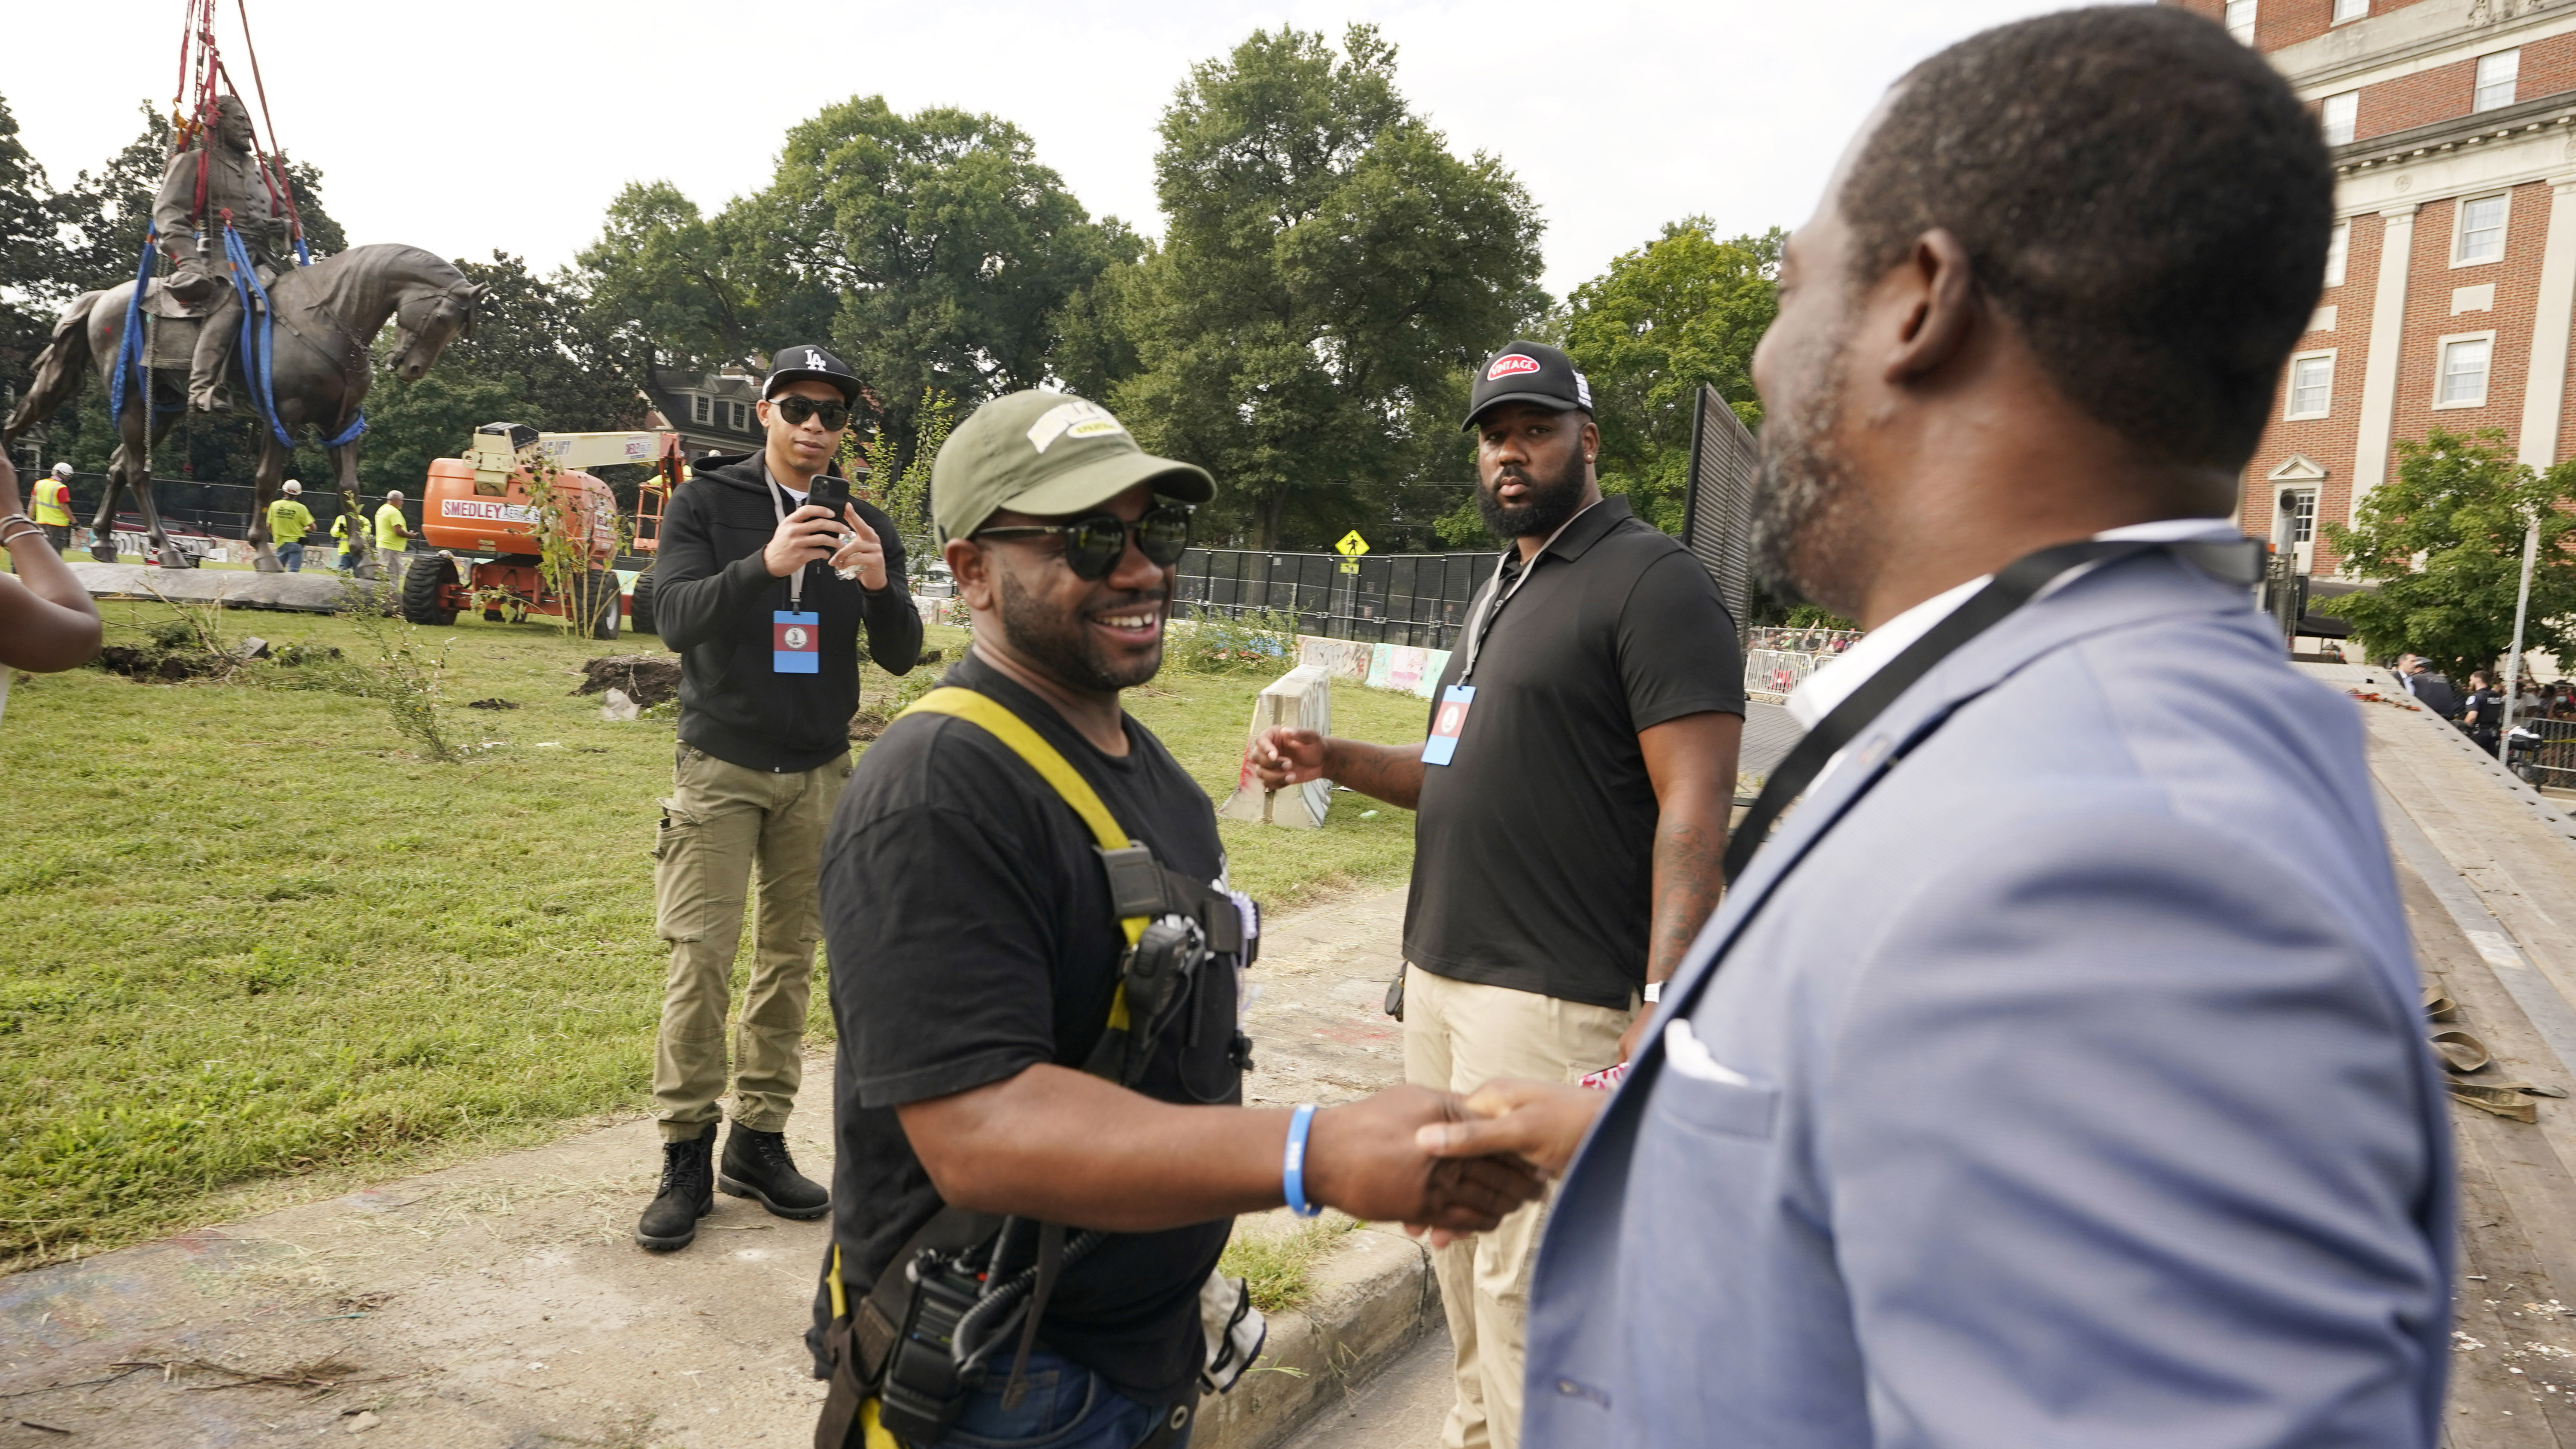 Devon Henry, left, was the owner of the construction company that removed the statue shook hands with Richmond Mayor, Levar Stoney, right.